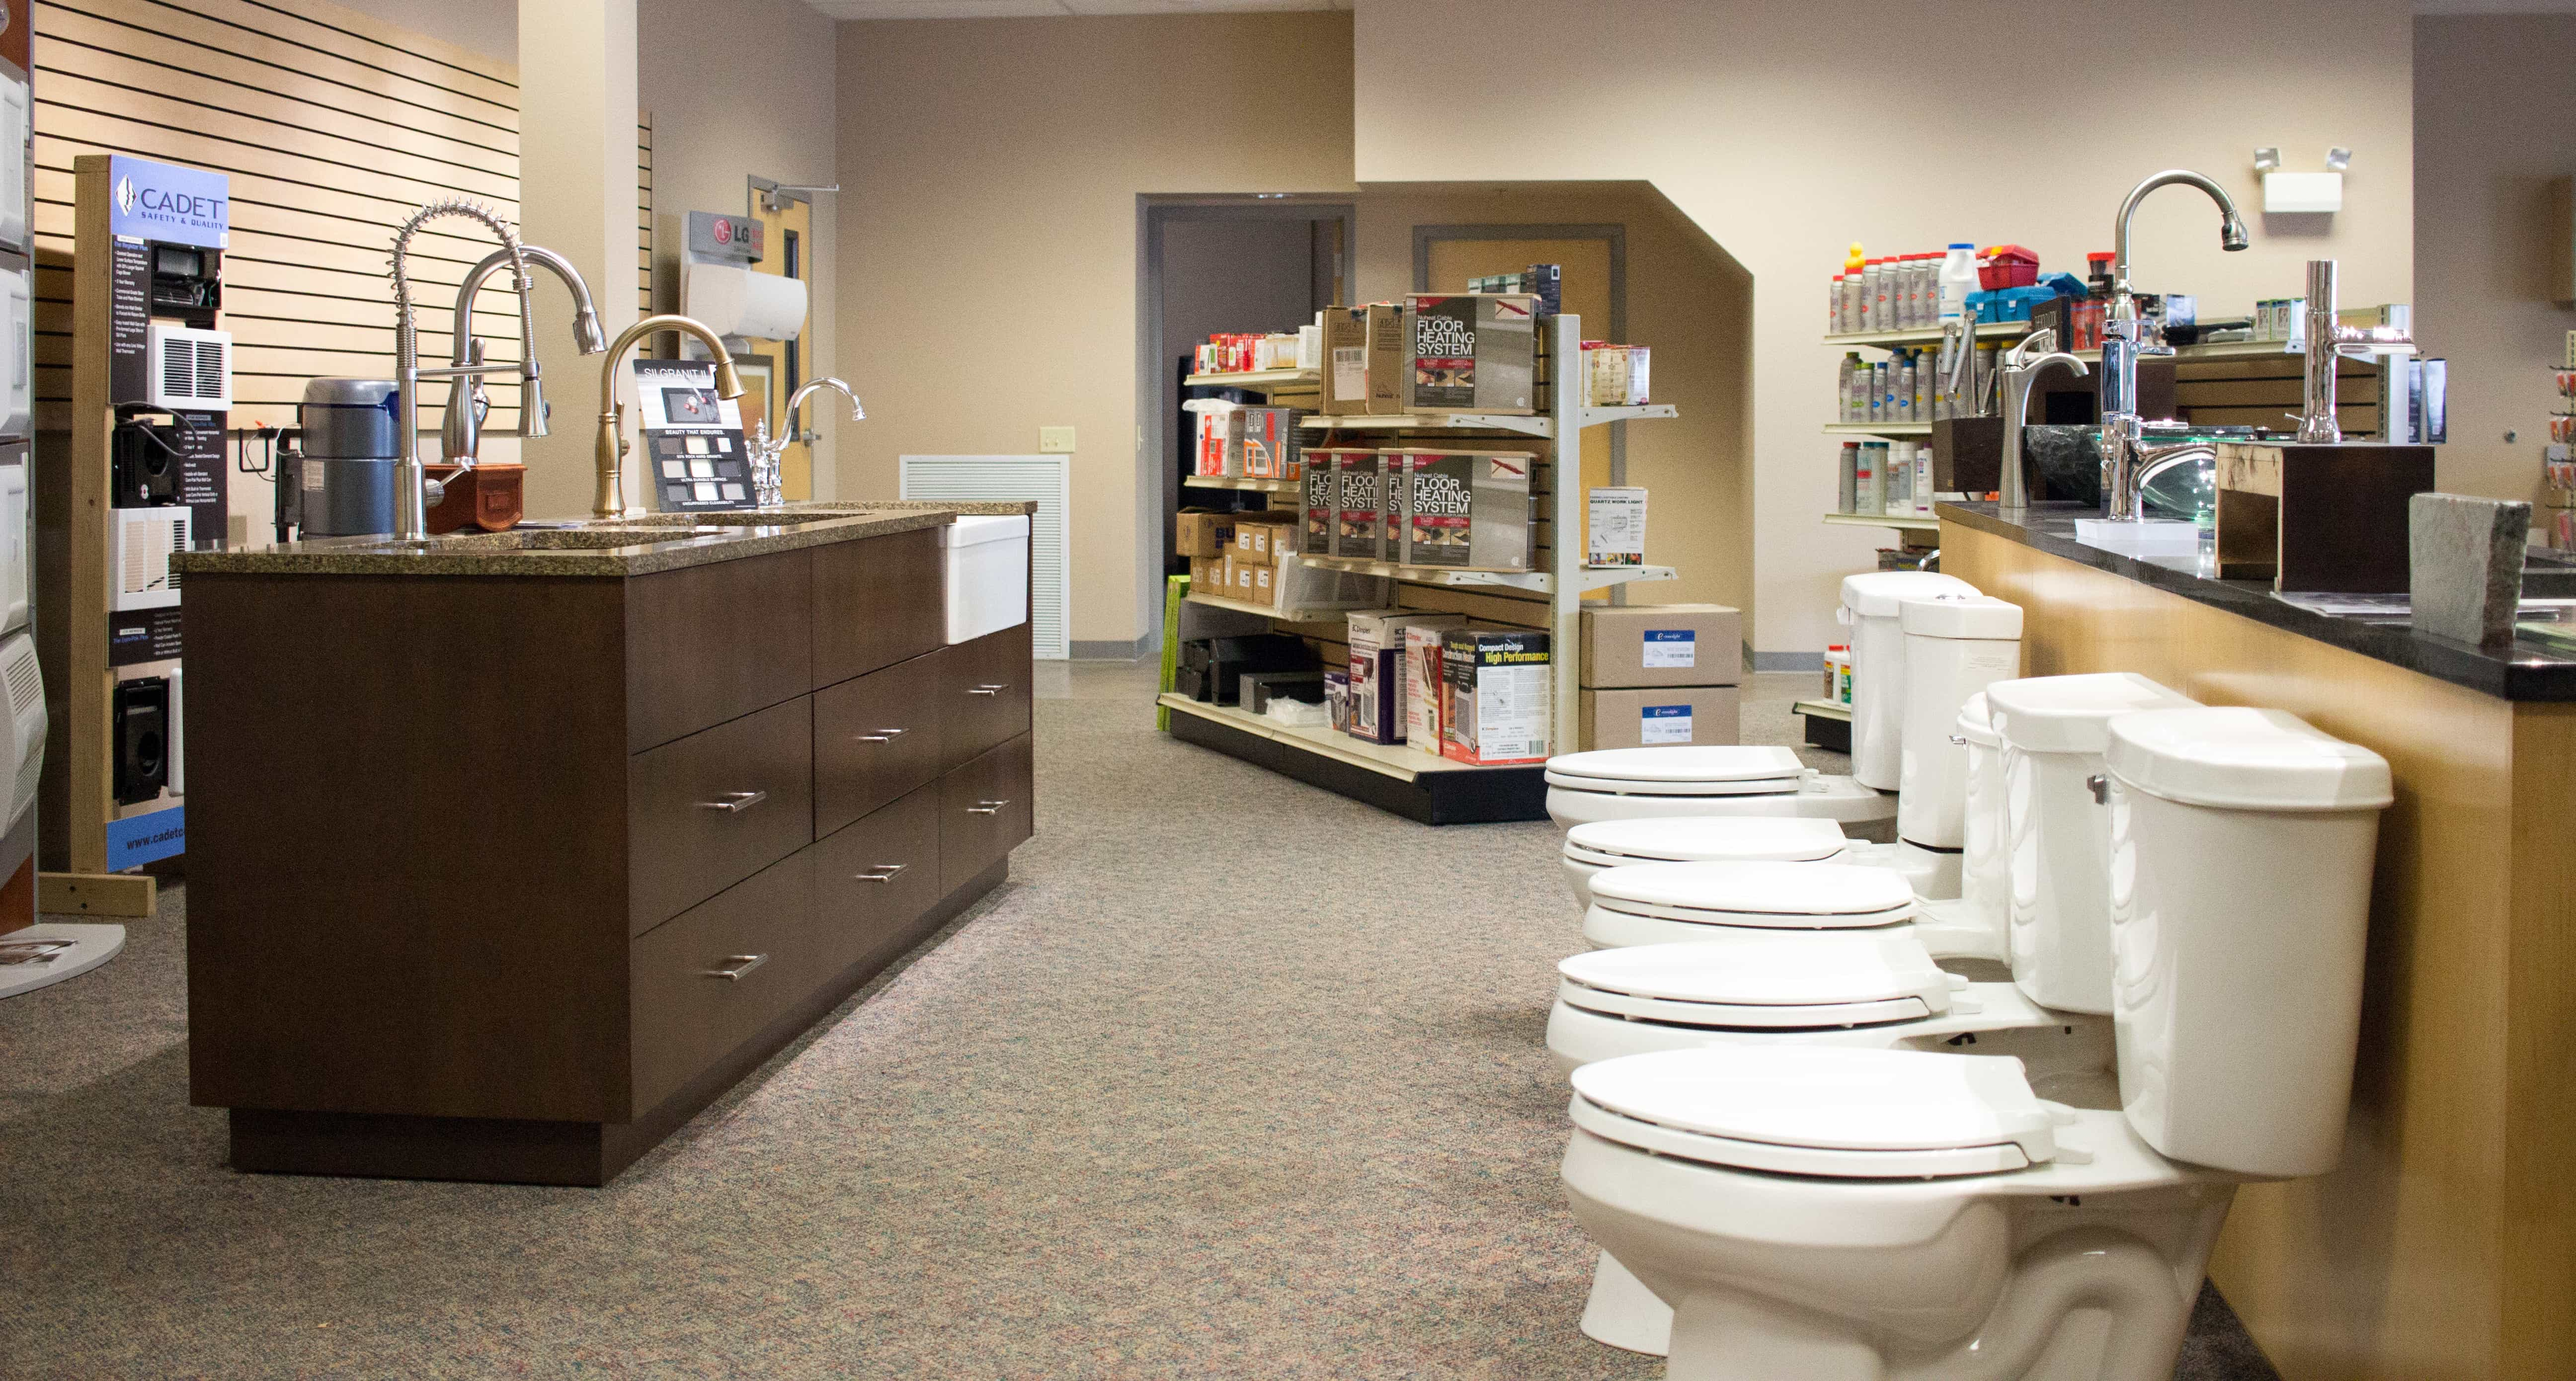 Beyond services, Van's Plumbing & Electric offers a showroom with a wide variety of products on display.